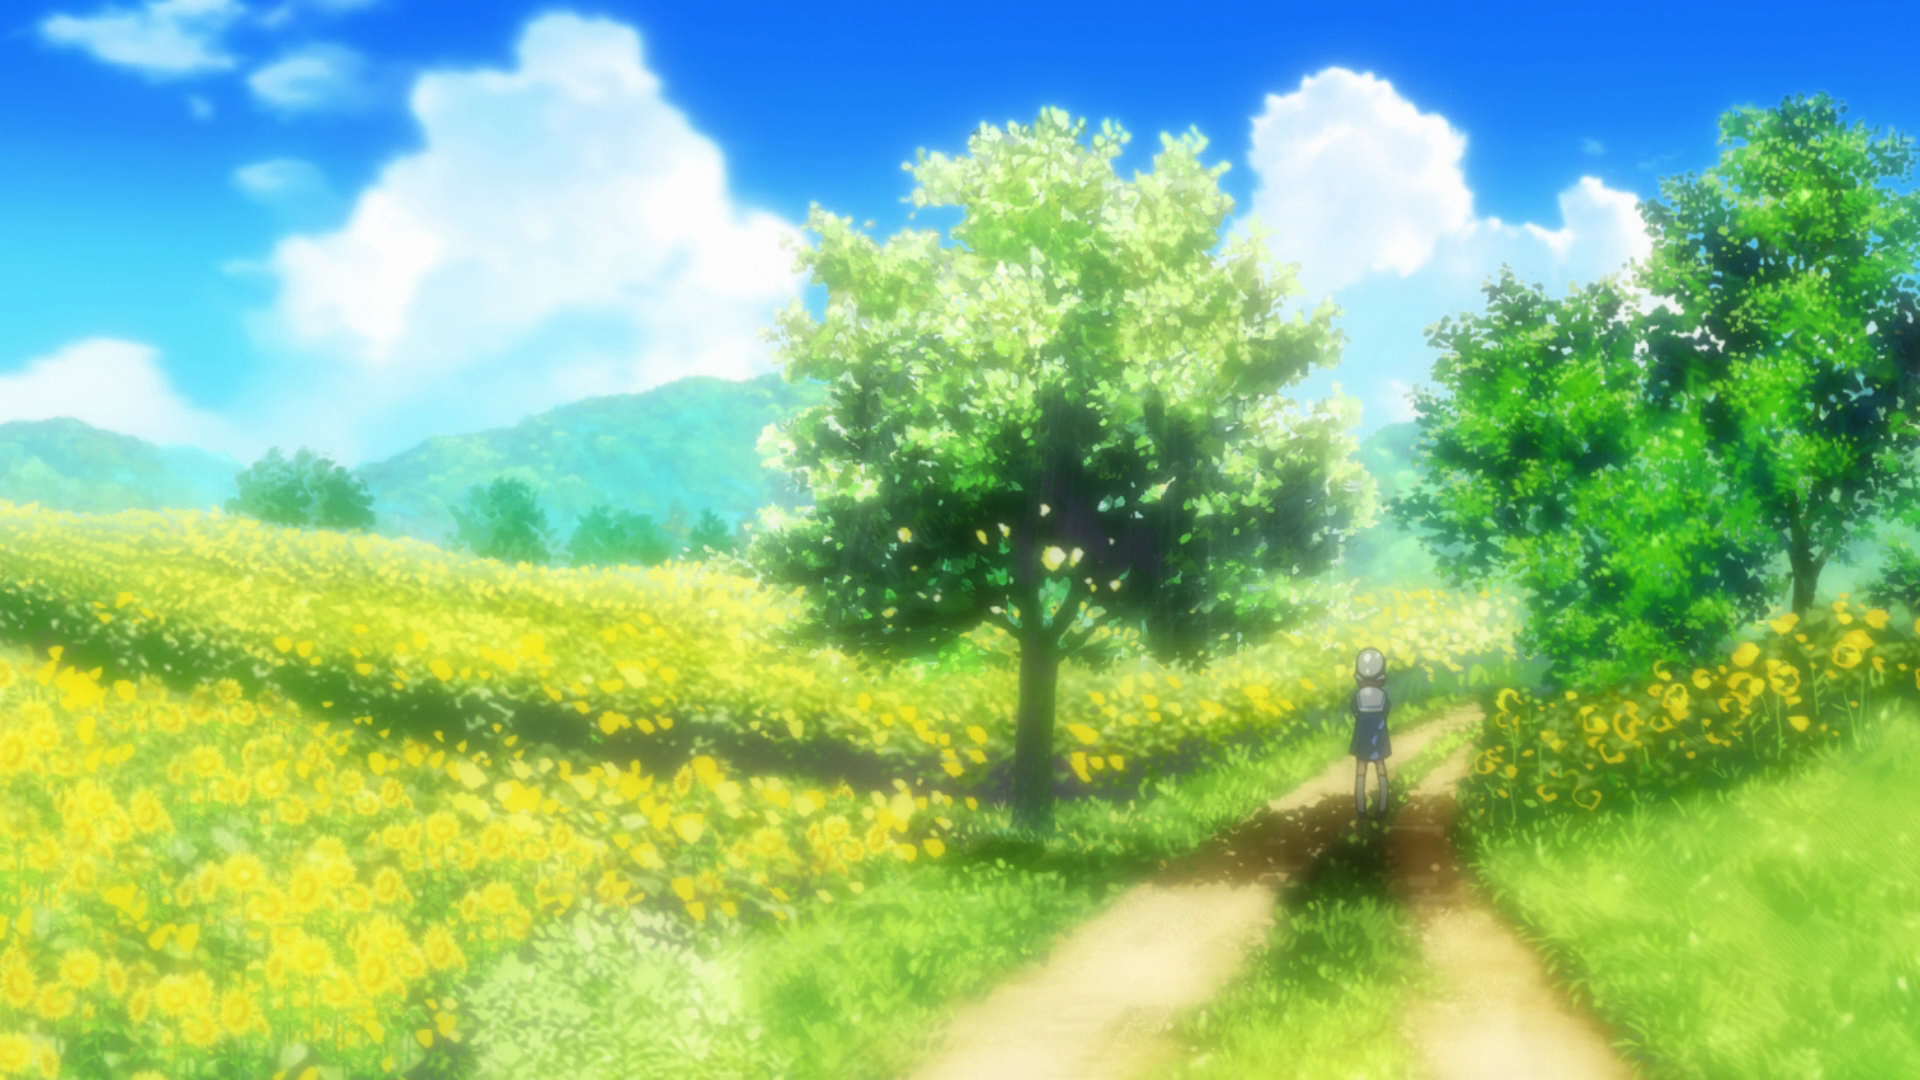 Clannad Wallpaper 1920x1080 Posted By Samantha Sellers